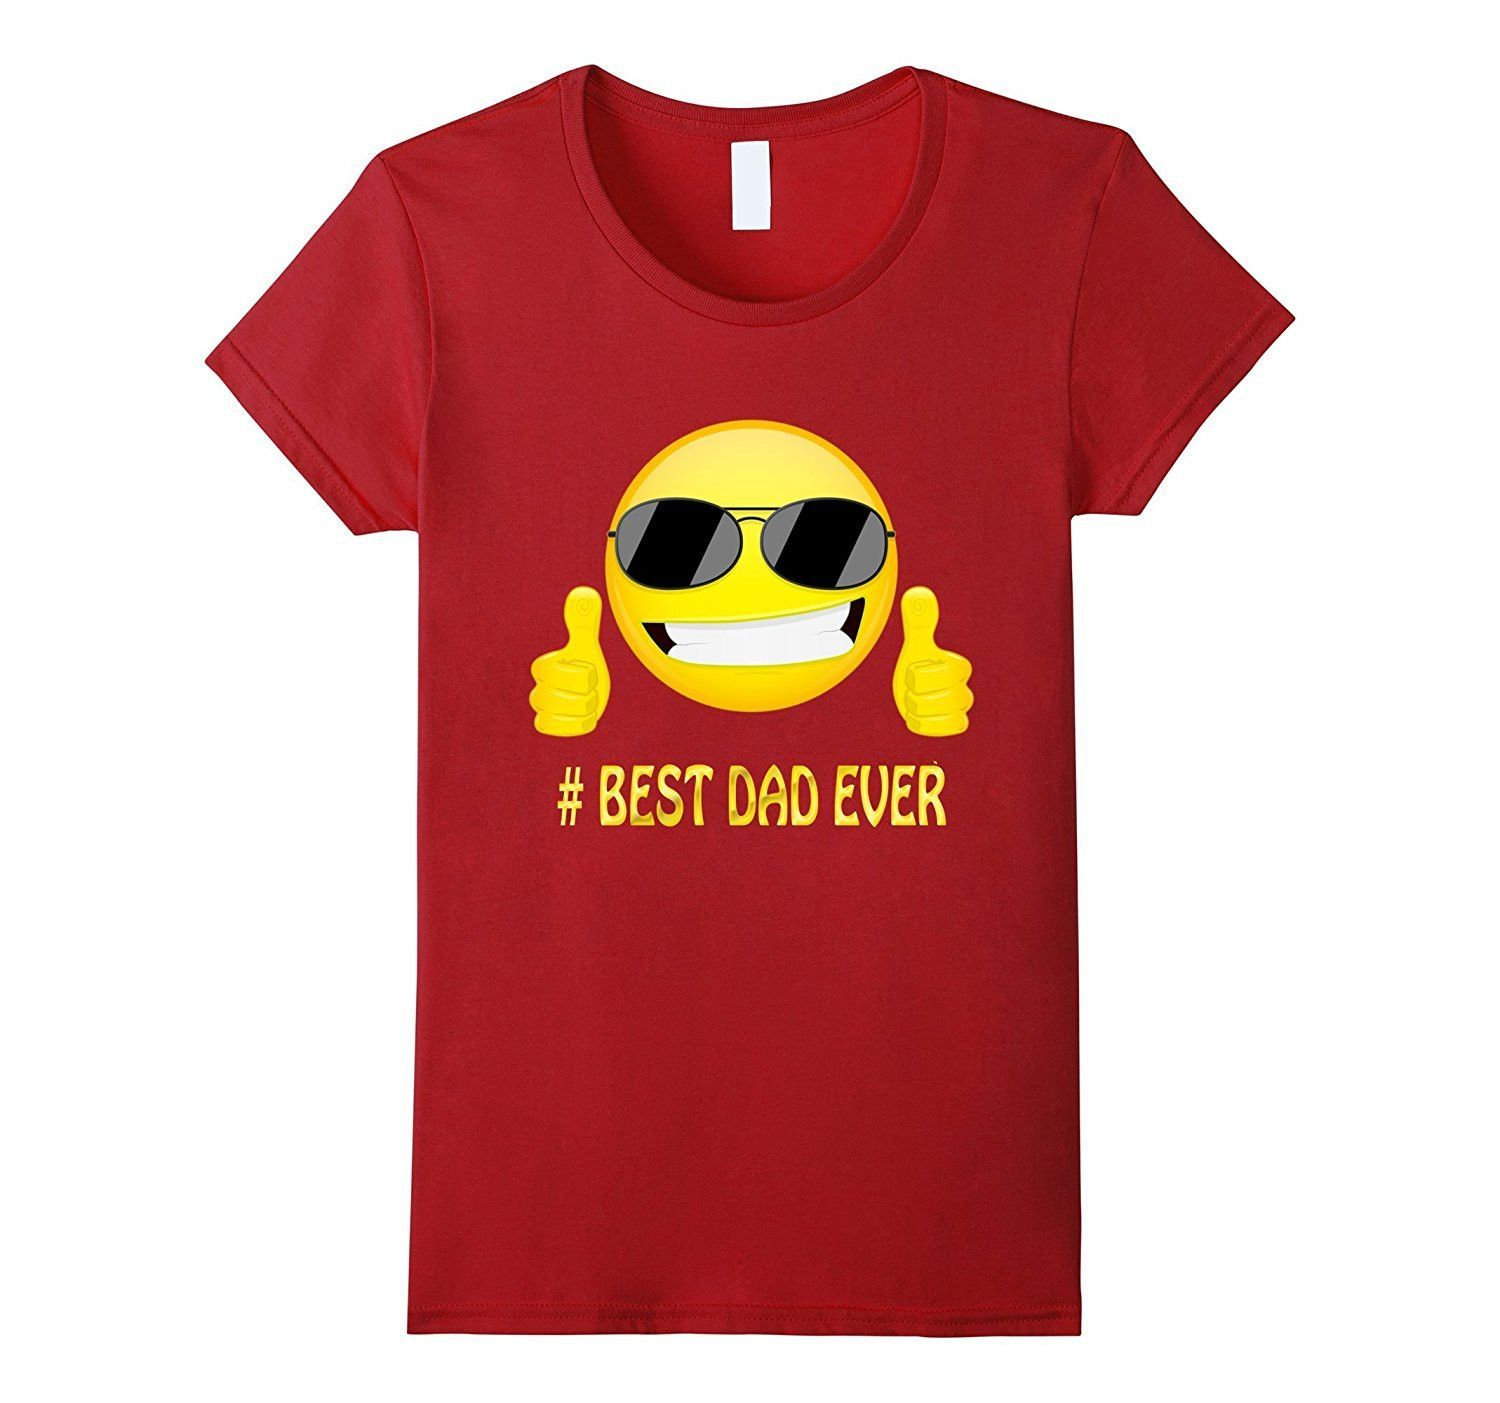 Best Dad Ever Emoji Tshirt For Dad Father's Day Gifts